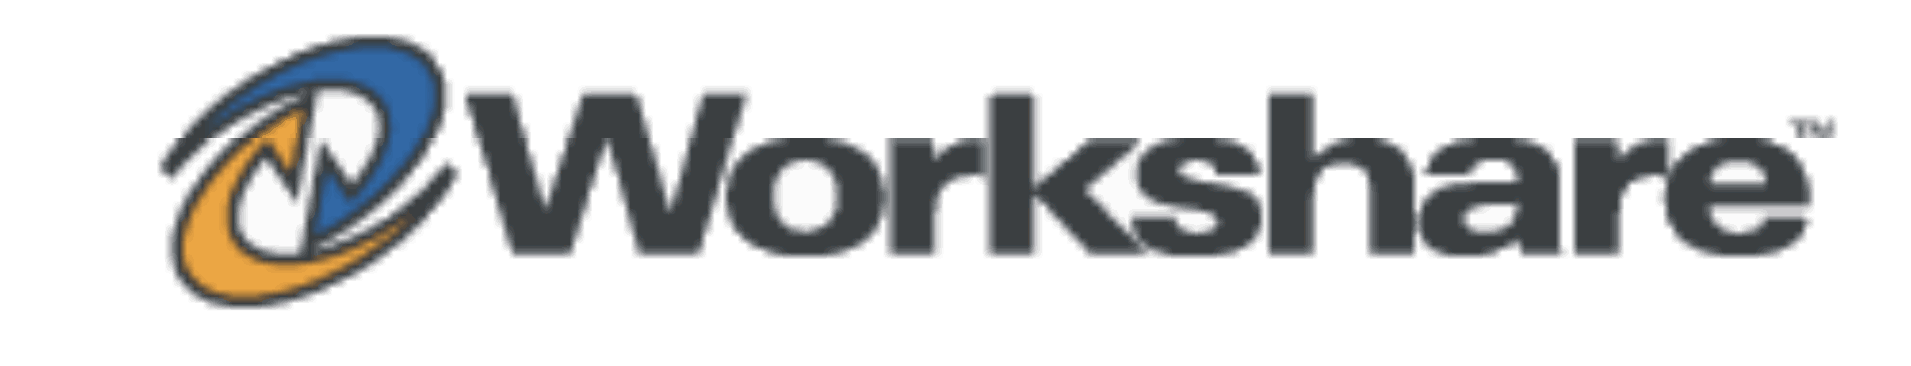 Workshare Announces All In One Affordable Solution To